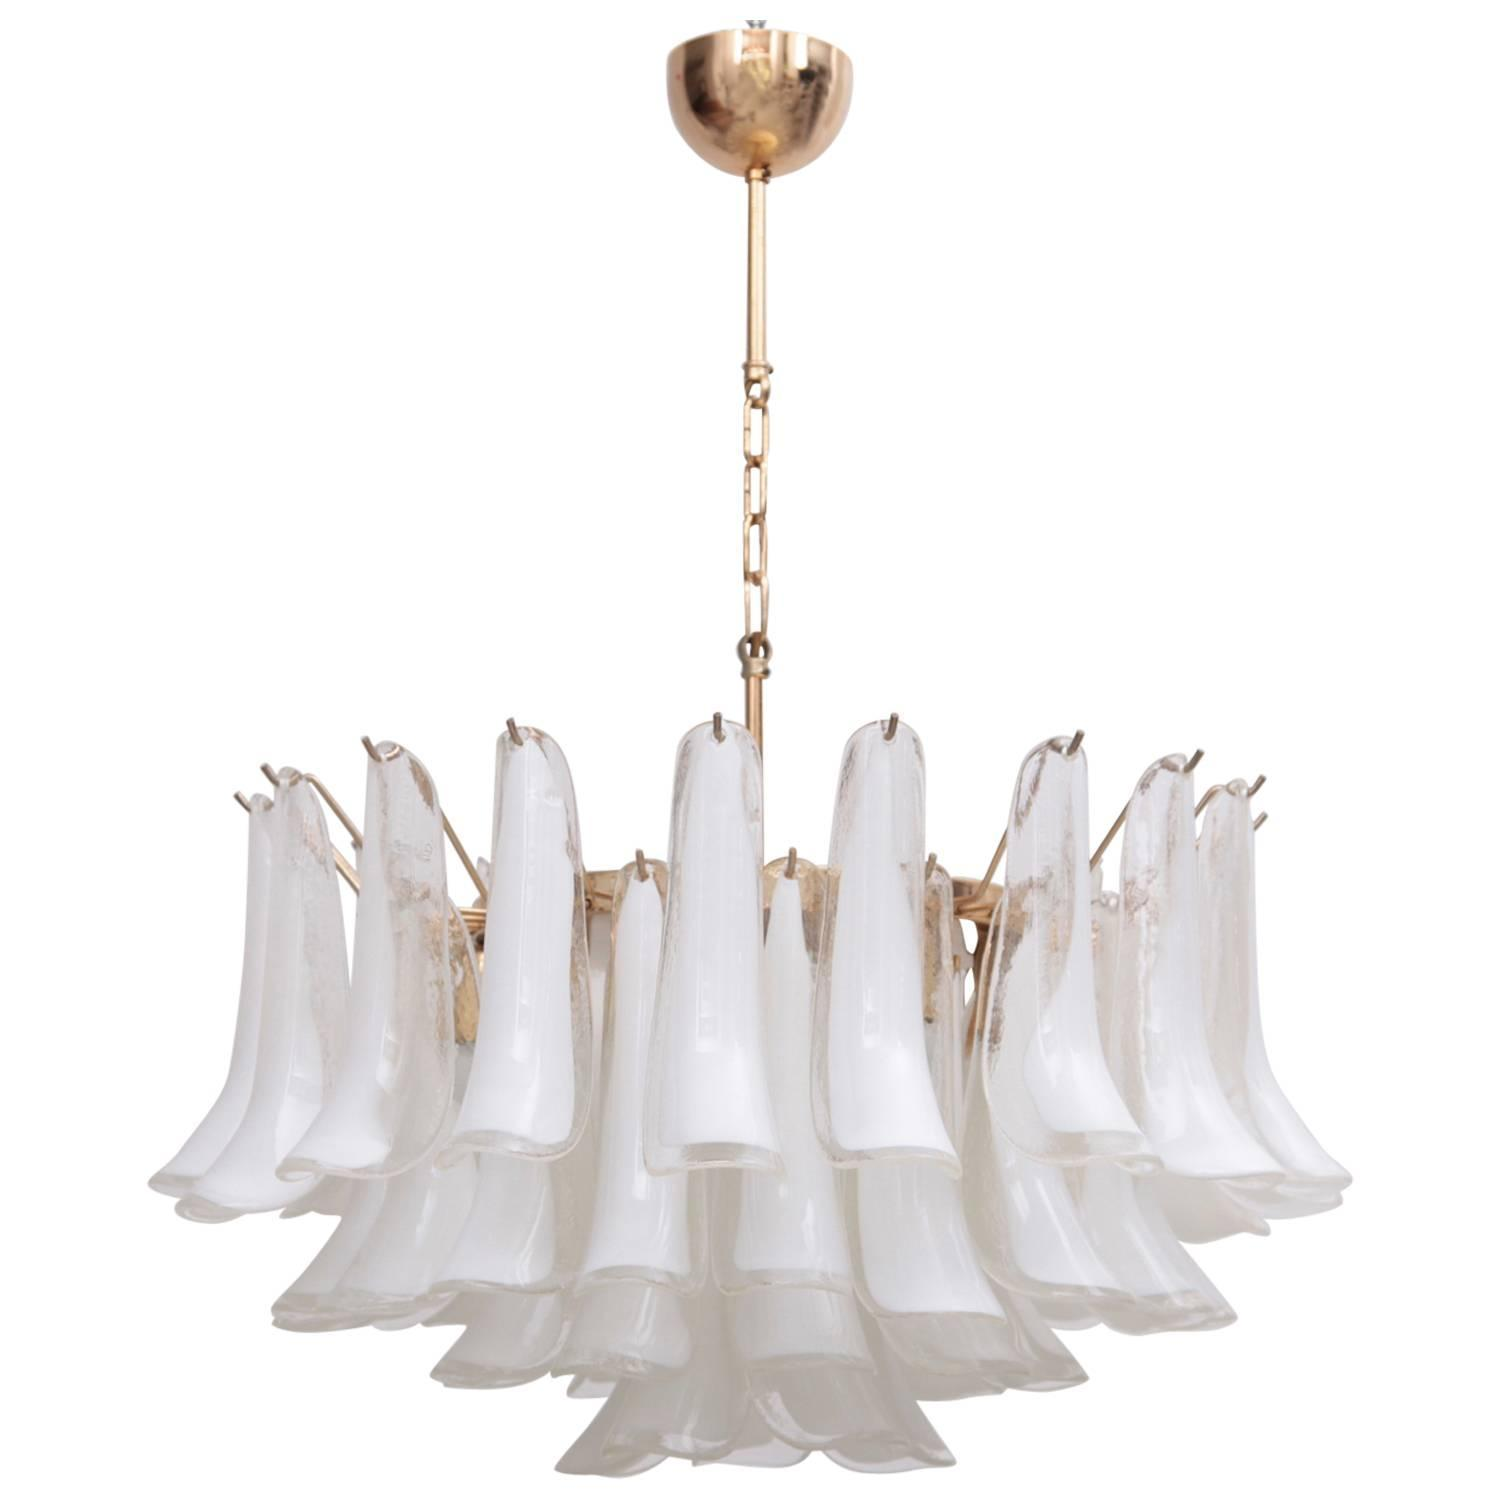 Extra Large Murano Chandelier With Gold Plated Base Italy 1970s At 1stdibs